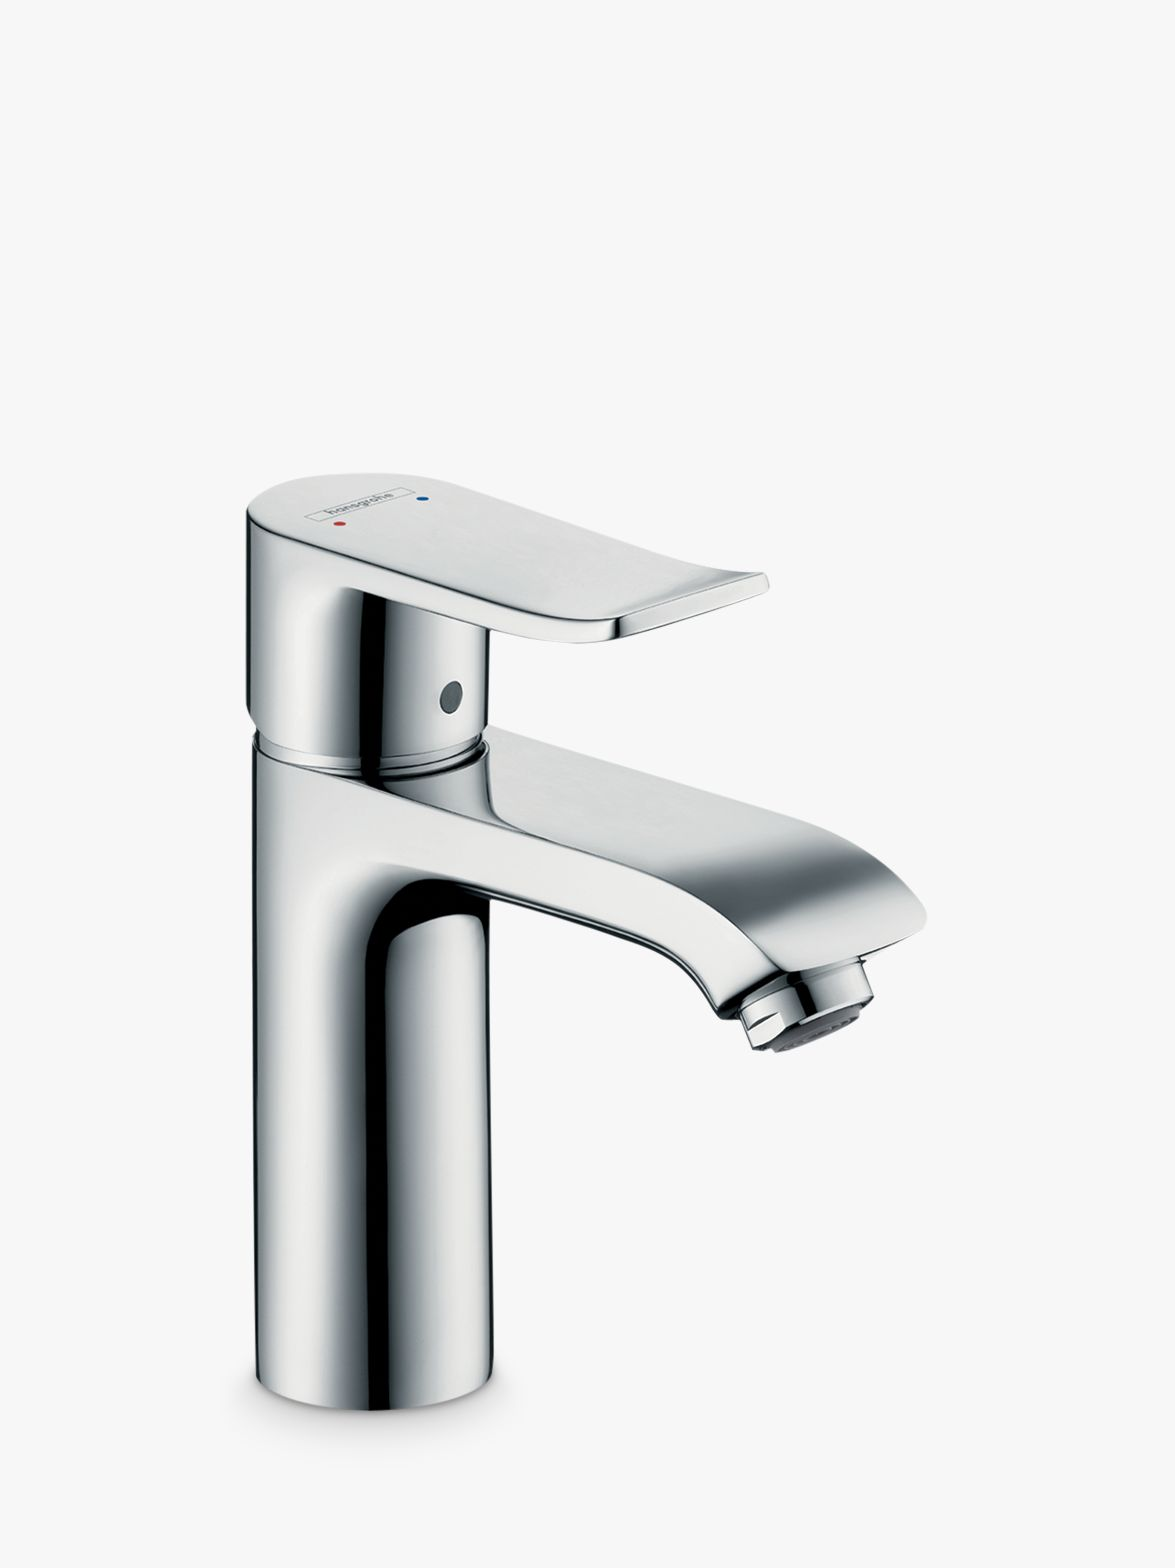 Hansgrohe Hansgrohe Metris 110 Single Lever Bathroom Basin Mixer Tap, Chrome